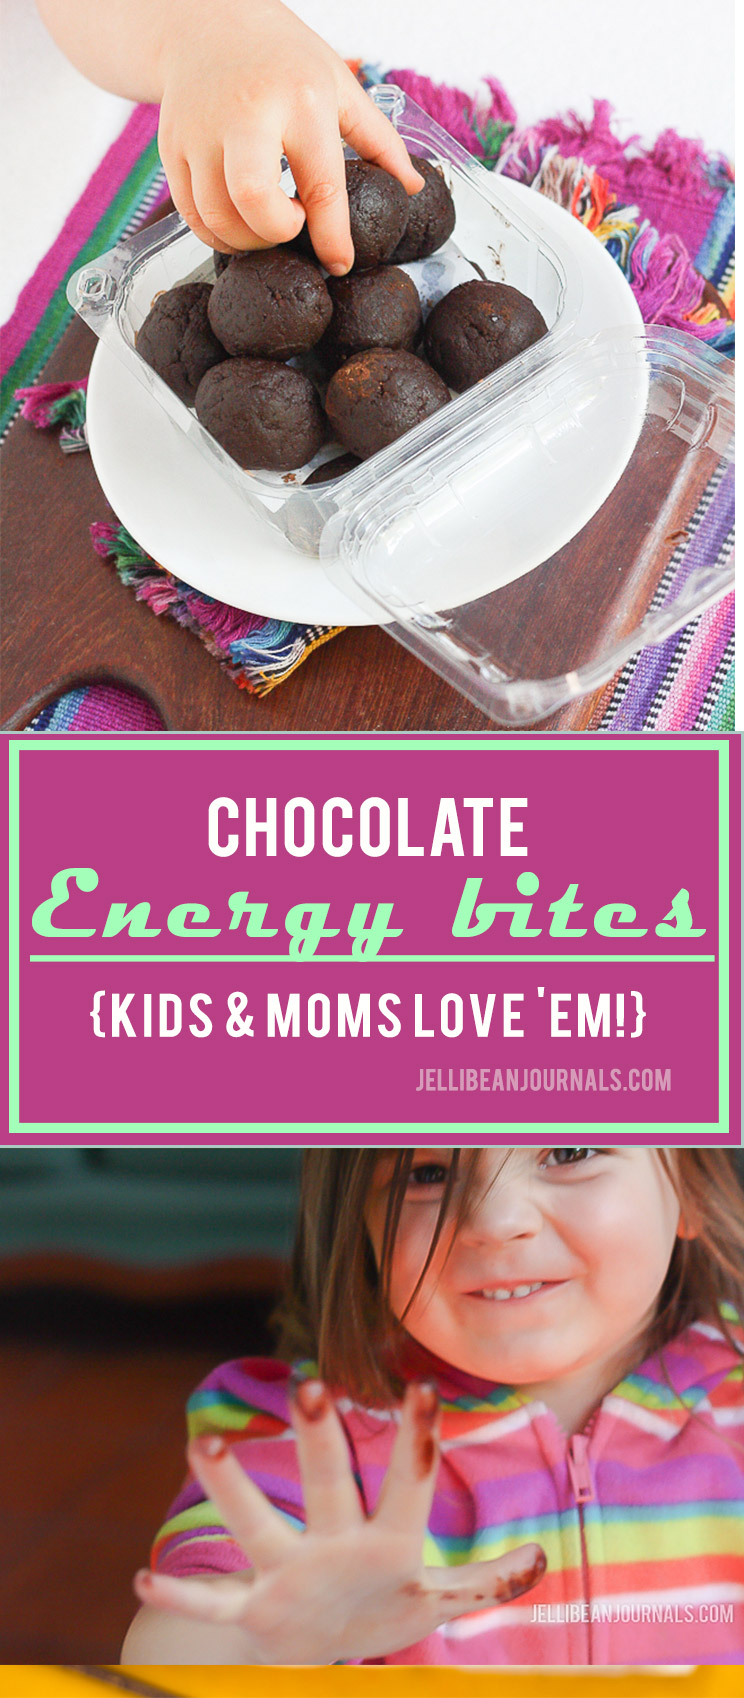 Chocolate energy balls are packed with nutrition and just plain delish! | Jellibeanjournals.com